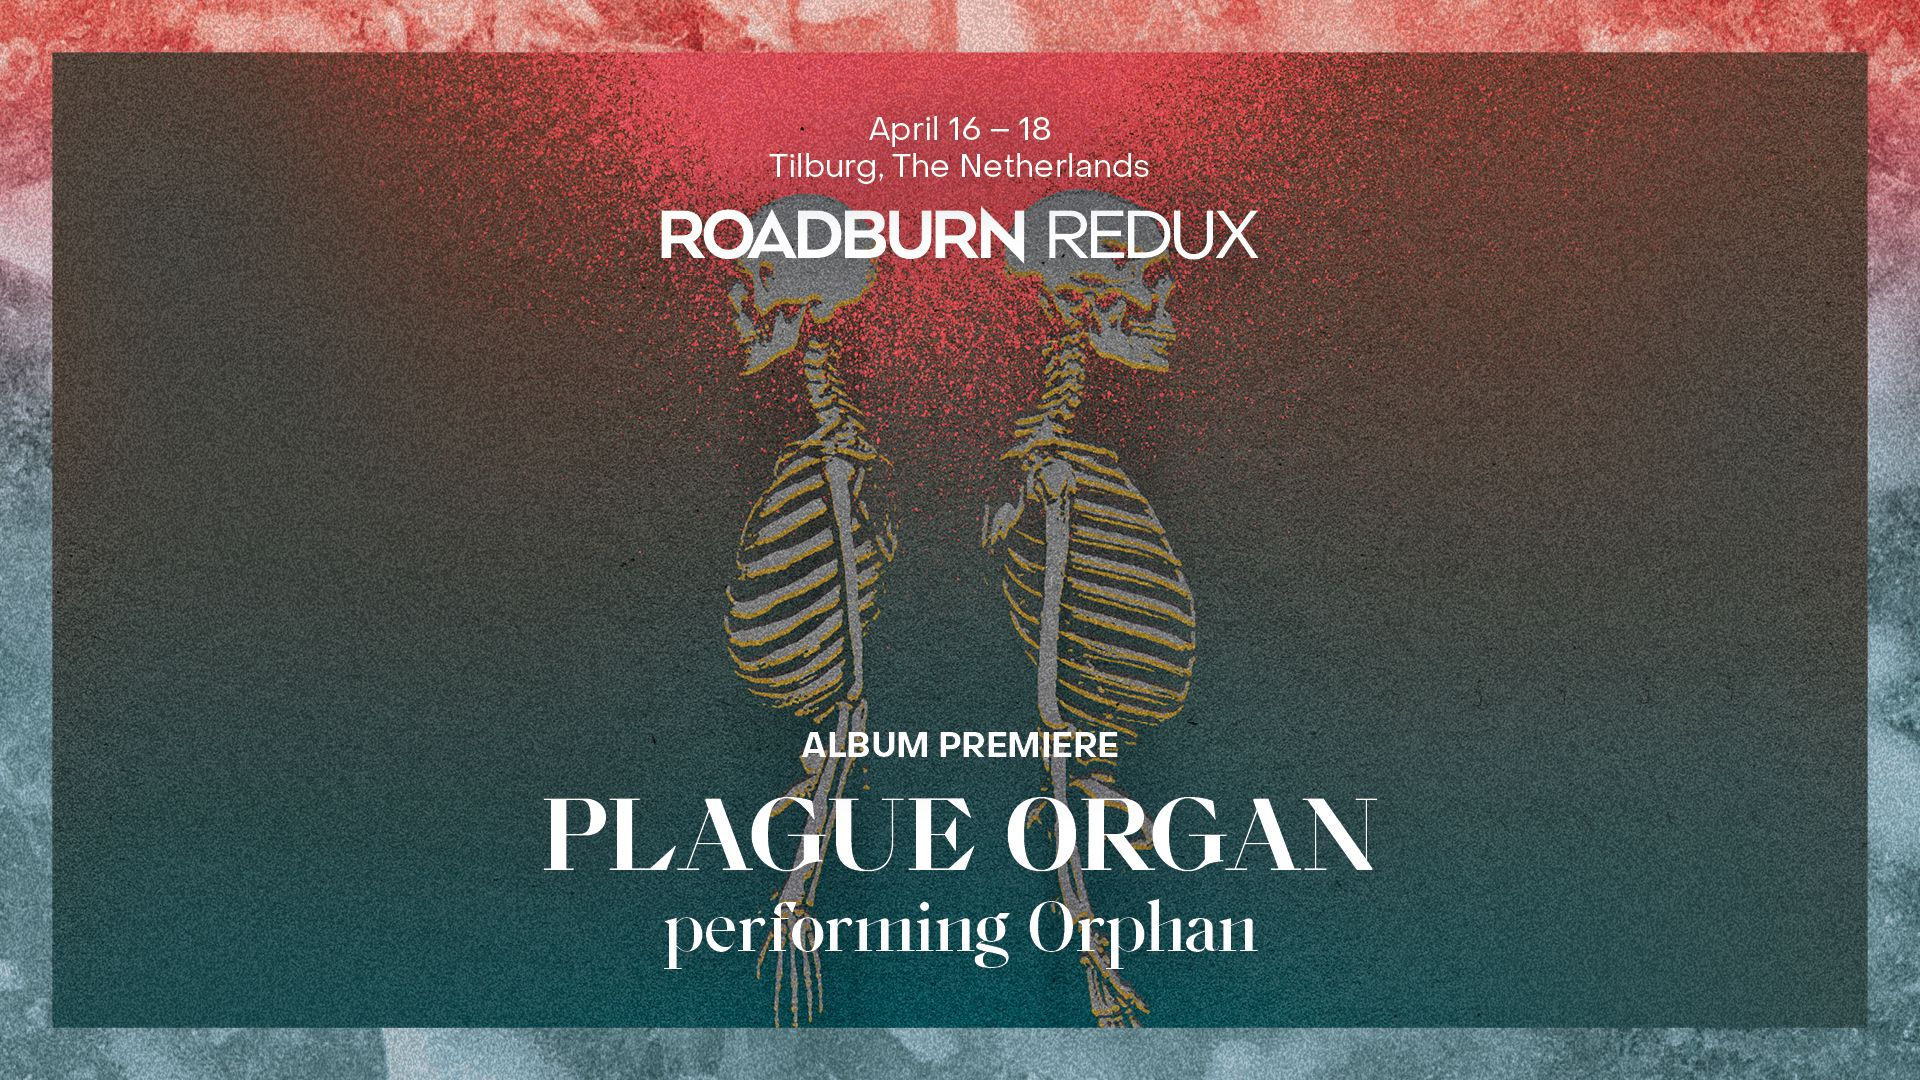 Roadburn & LGW present: Plague Organ performing Orphan as part of Roadburn Redux